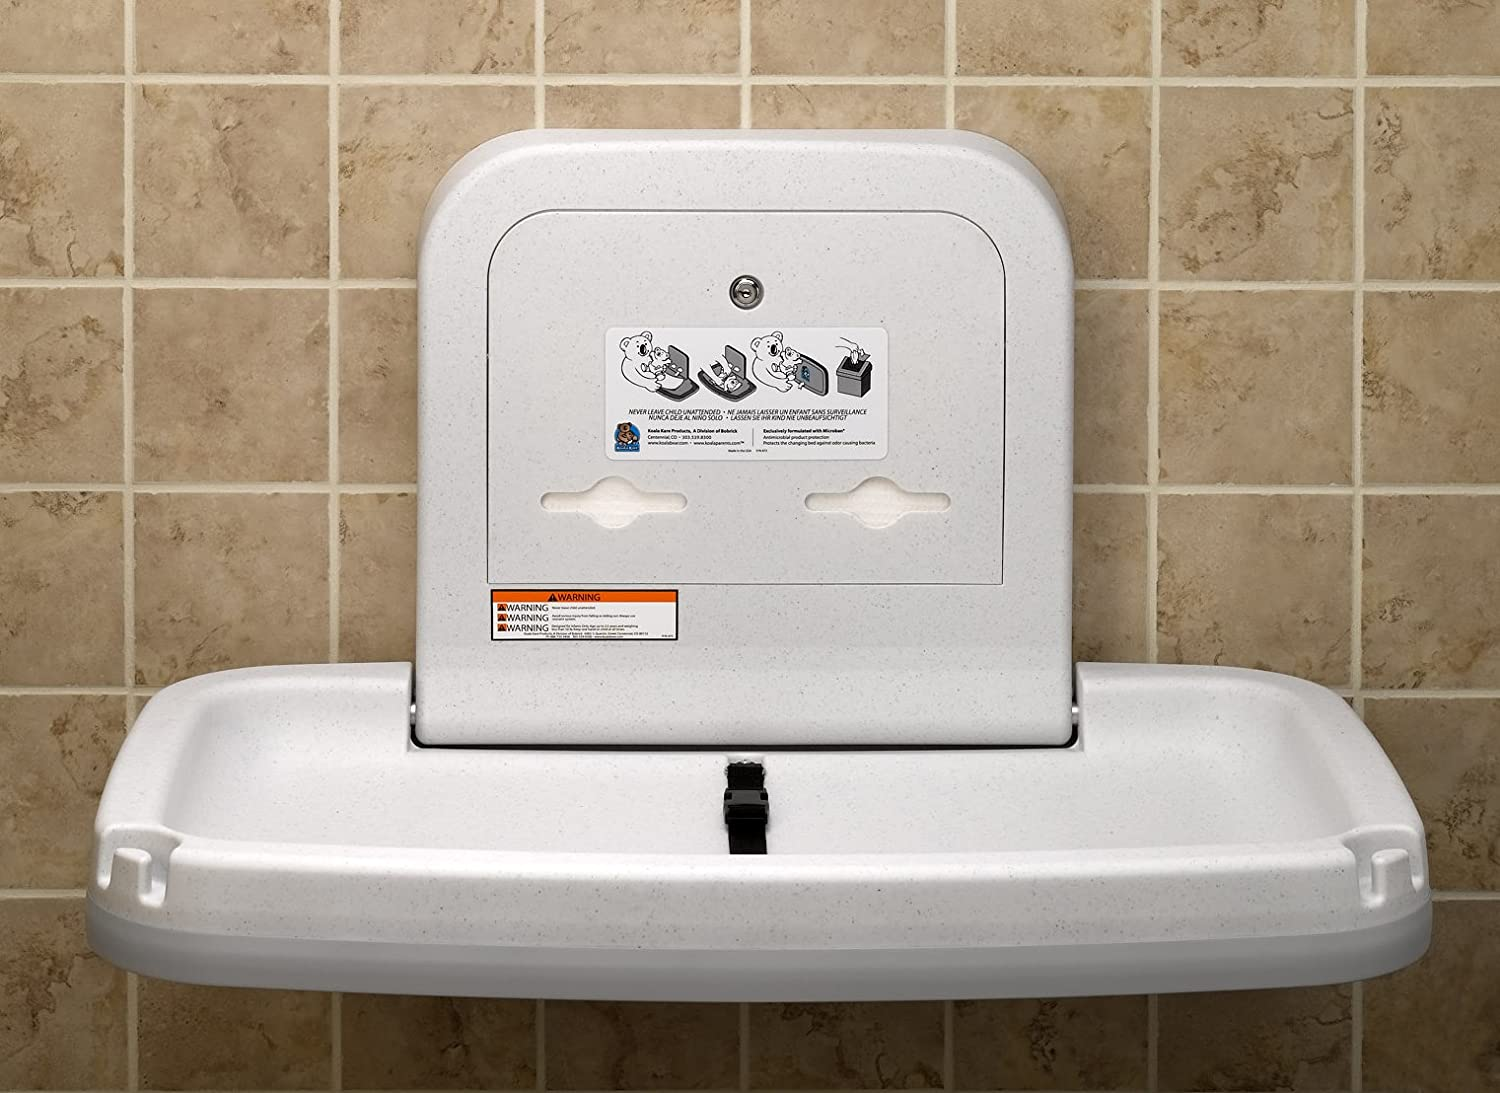 Delicieux Amazon.com: Koala Kare KB200 Horizontal Wall Mounted Baby Changing Station,  White Granite: Home Improvement